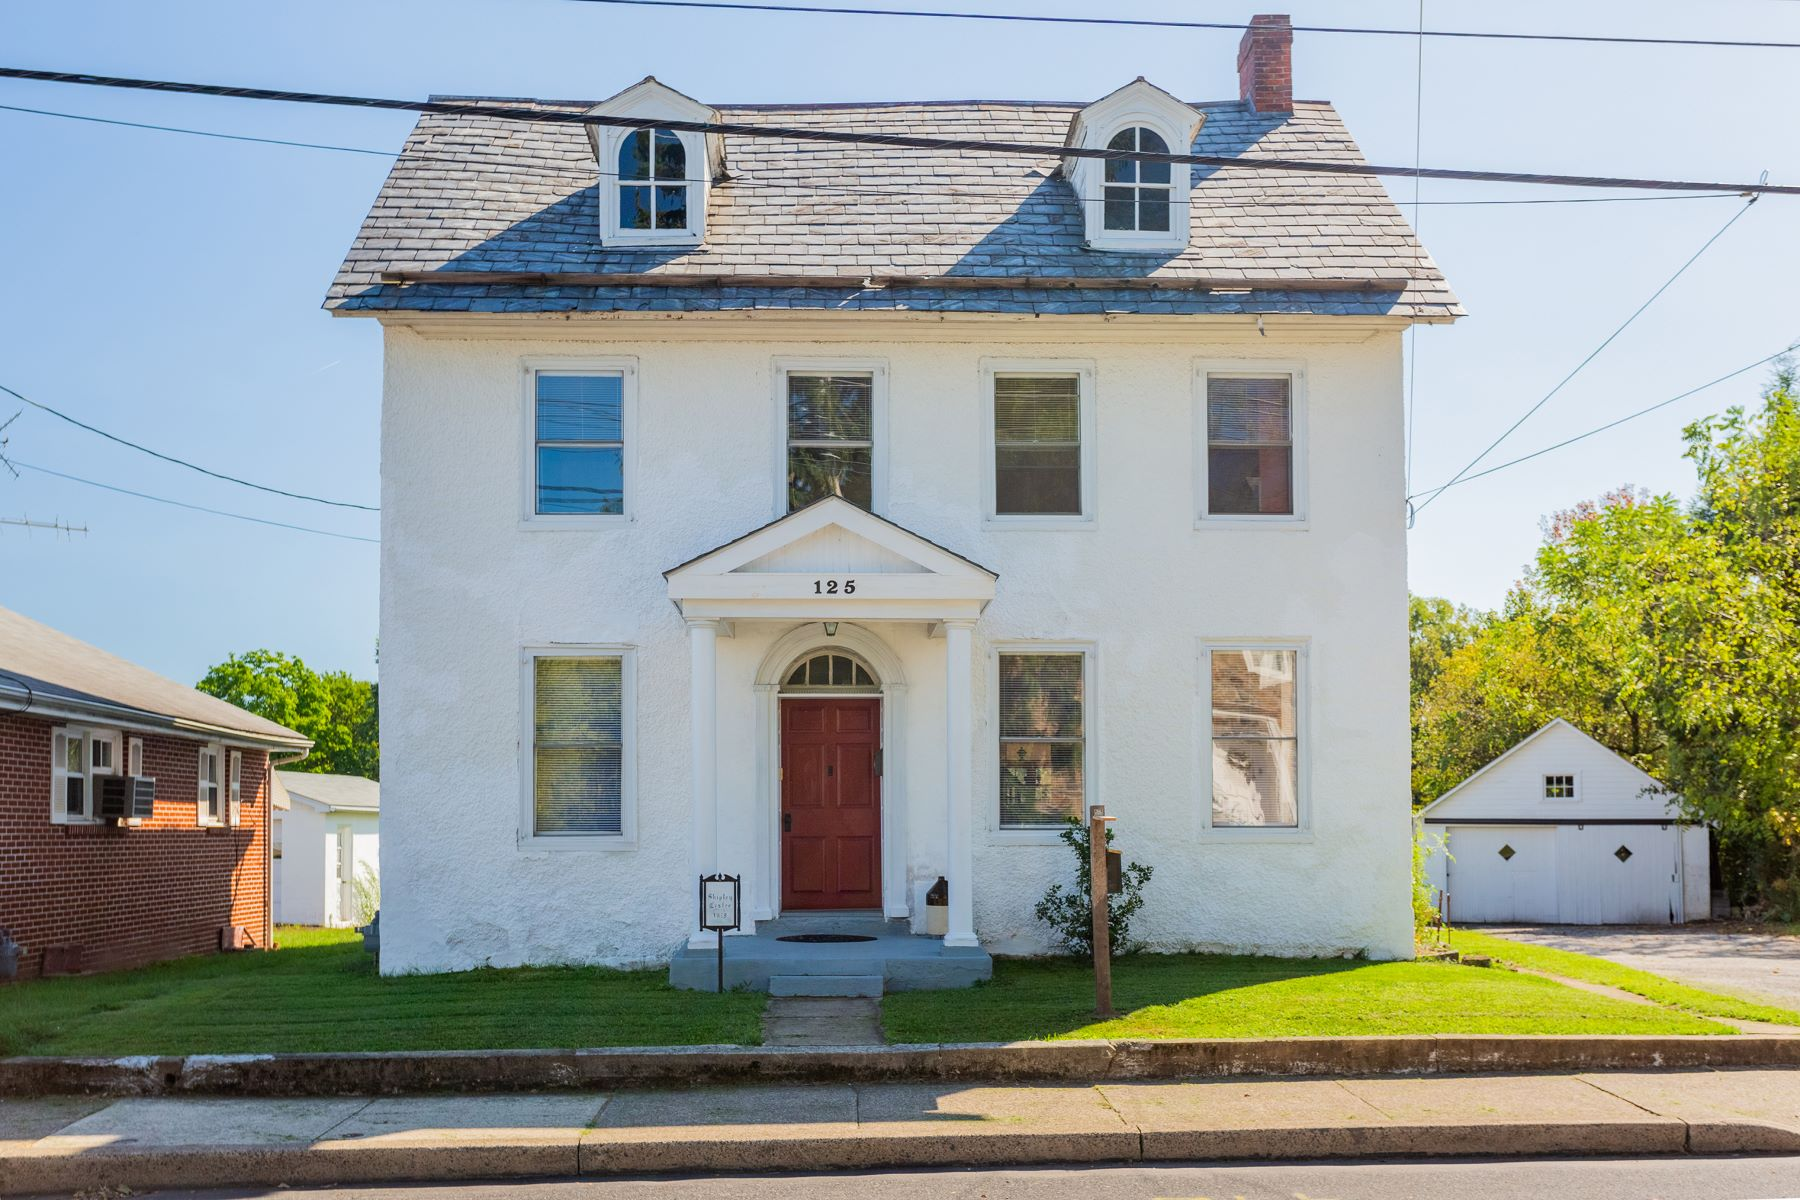 Single Family Homes for Sale at 125 S MAIN ST Quakertown, Pennsylvania 18951 United States